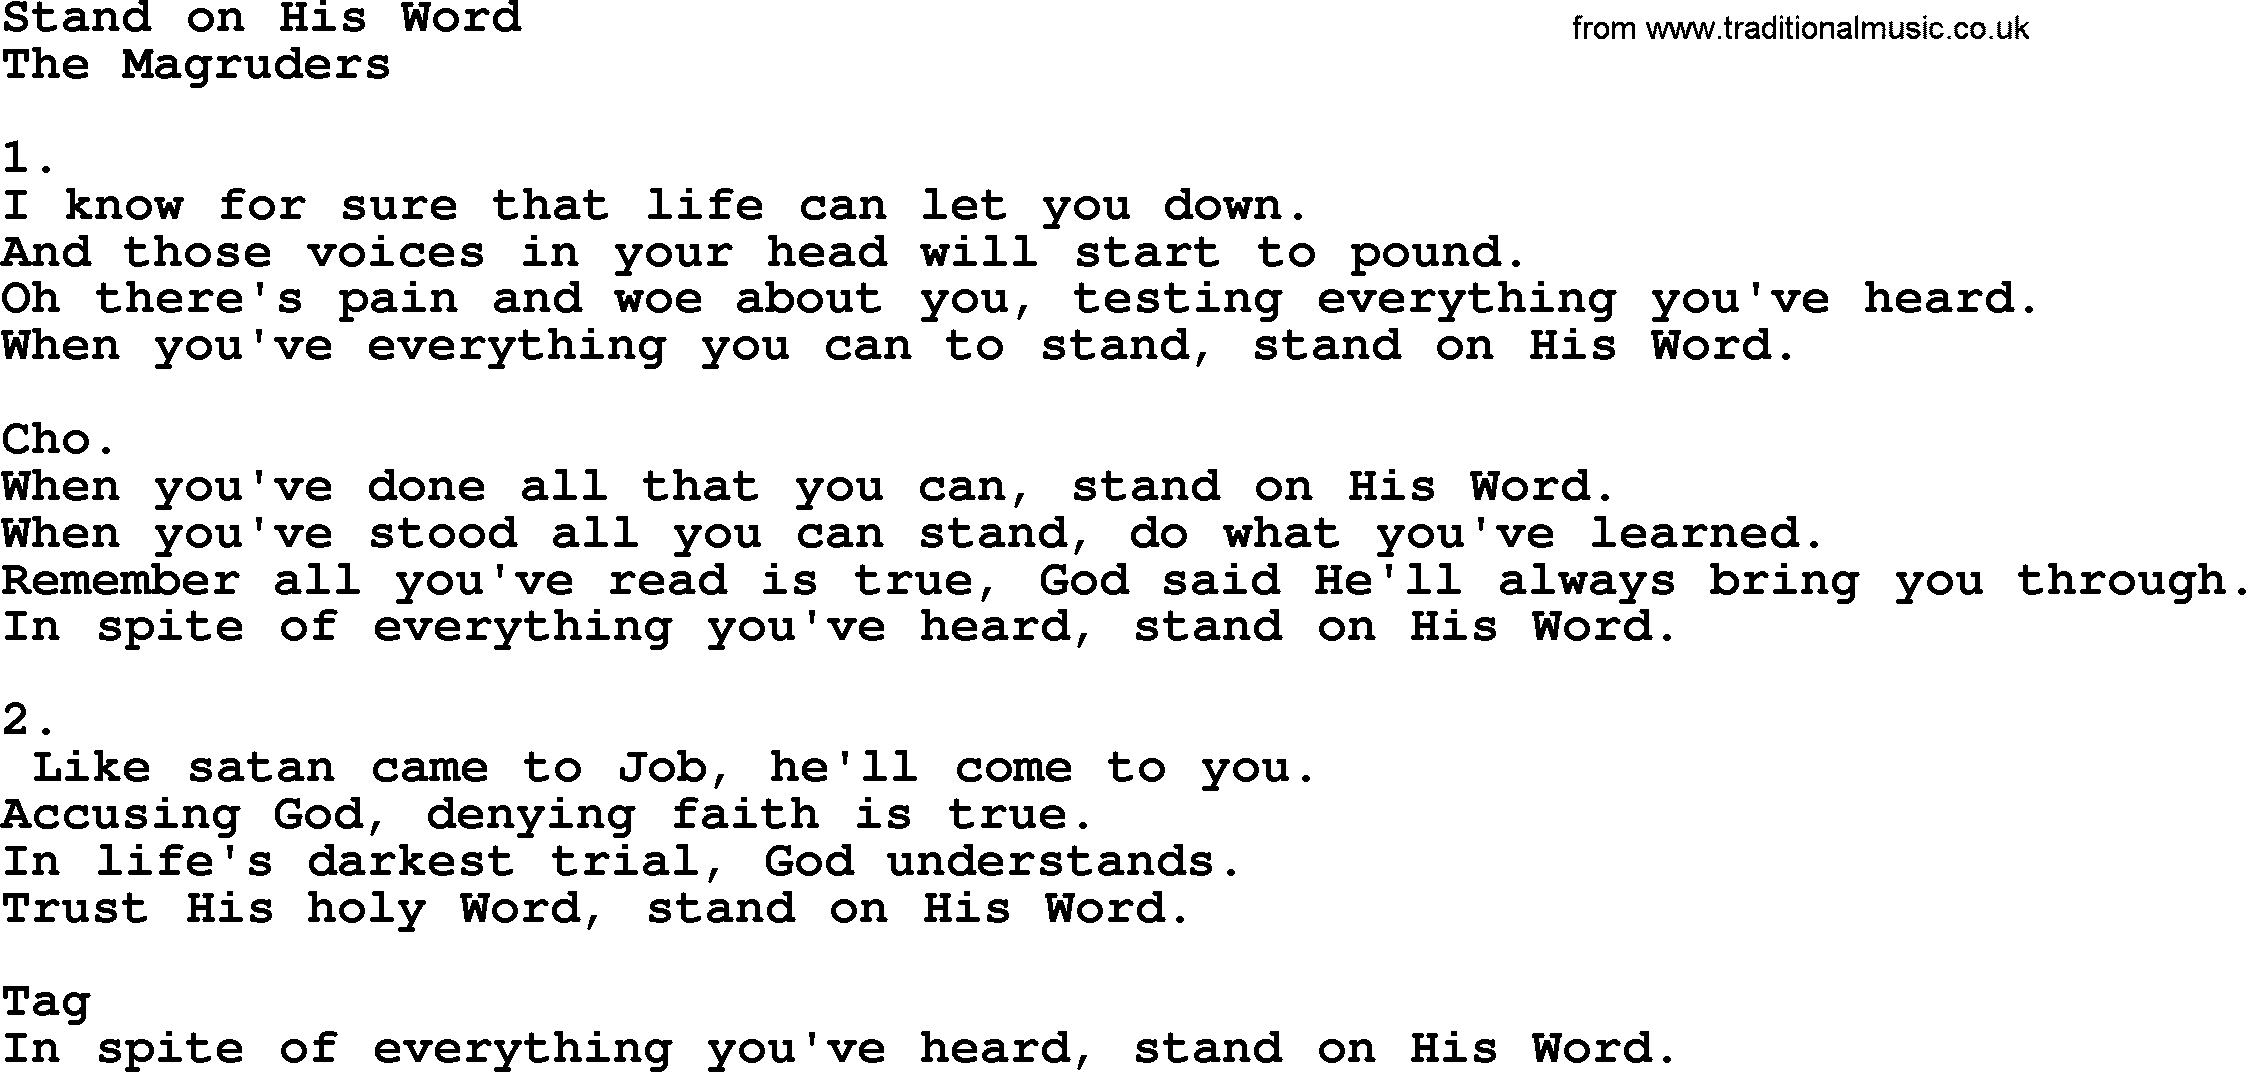 Stand on His Word - Apostolic and Pentecostal Hymns and Songs ...